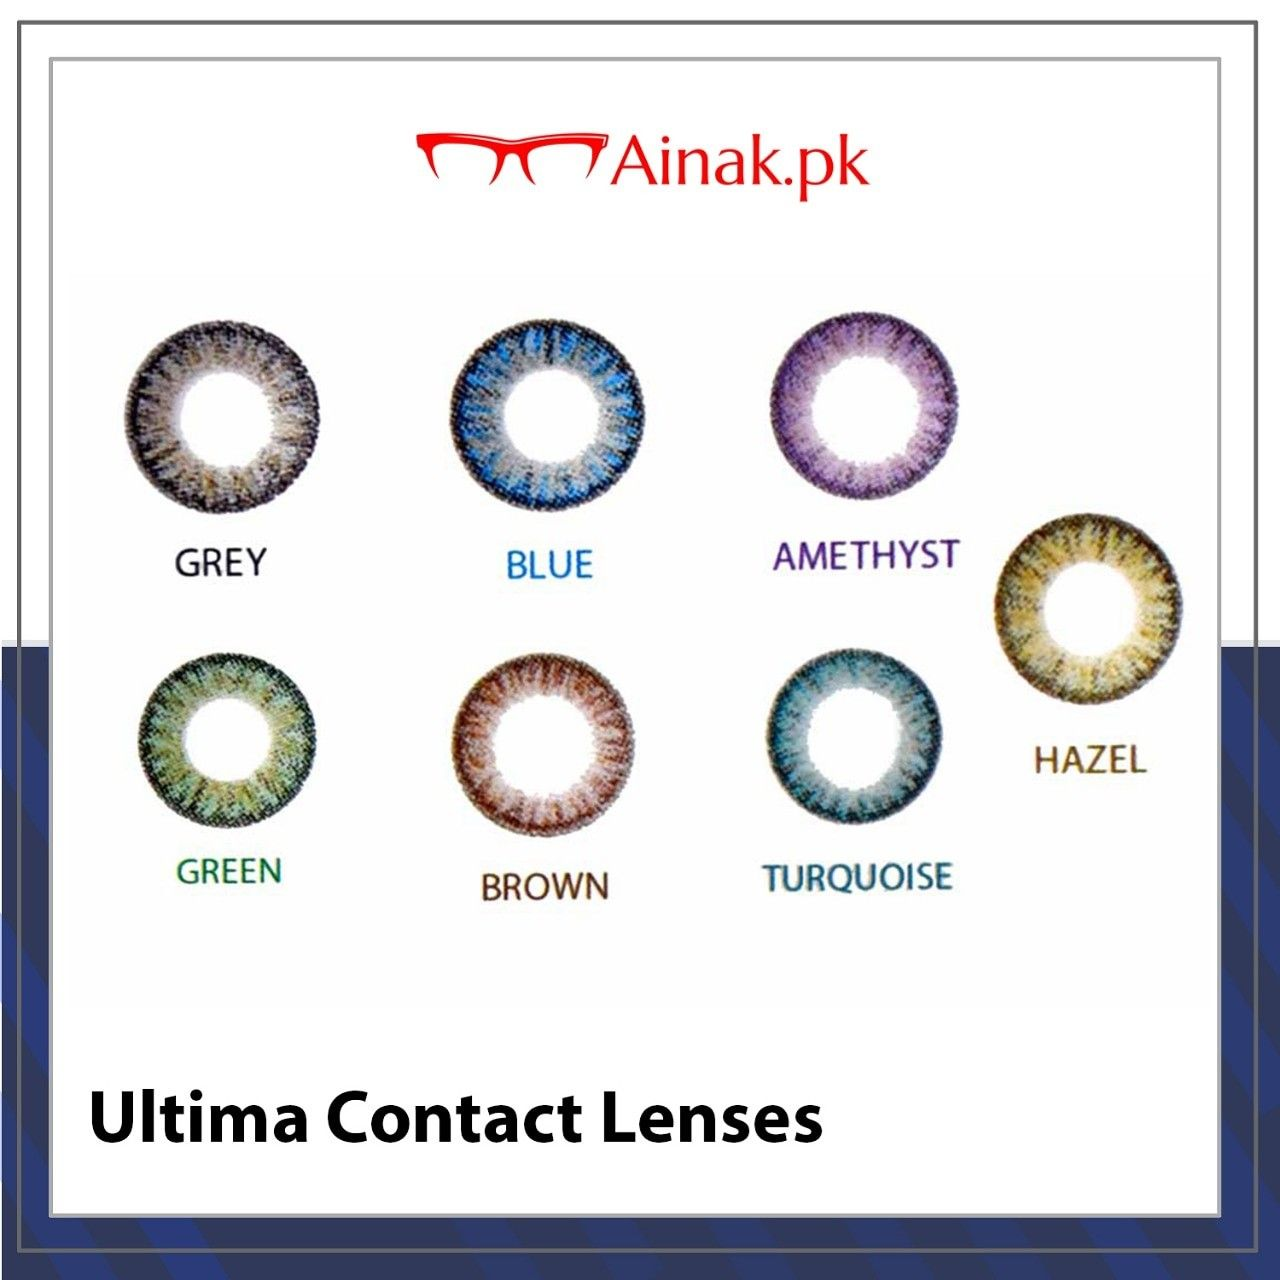 Buy Ultima Contact Lenses Online And Get Free Delivery In Pakistan Shop Now Www Ainak Pk Contact Contact Lenses Online Contact Lenses Colored Contact Lenses